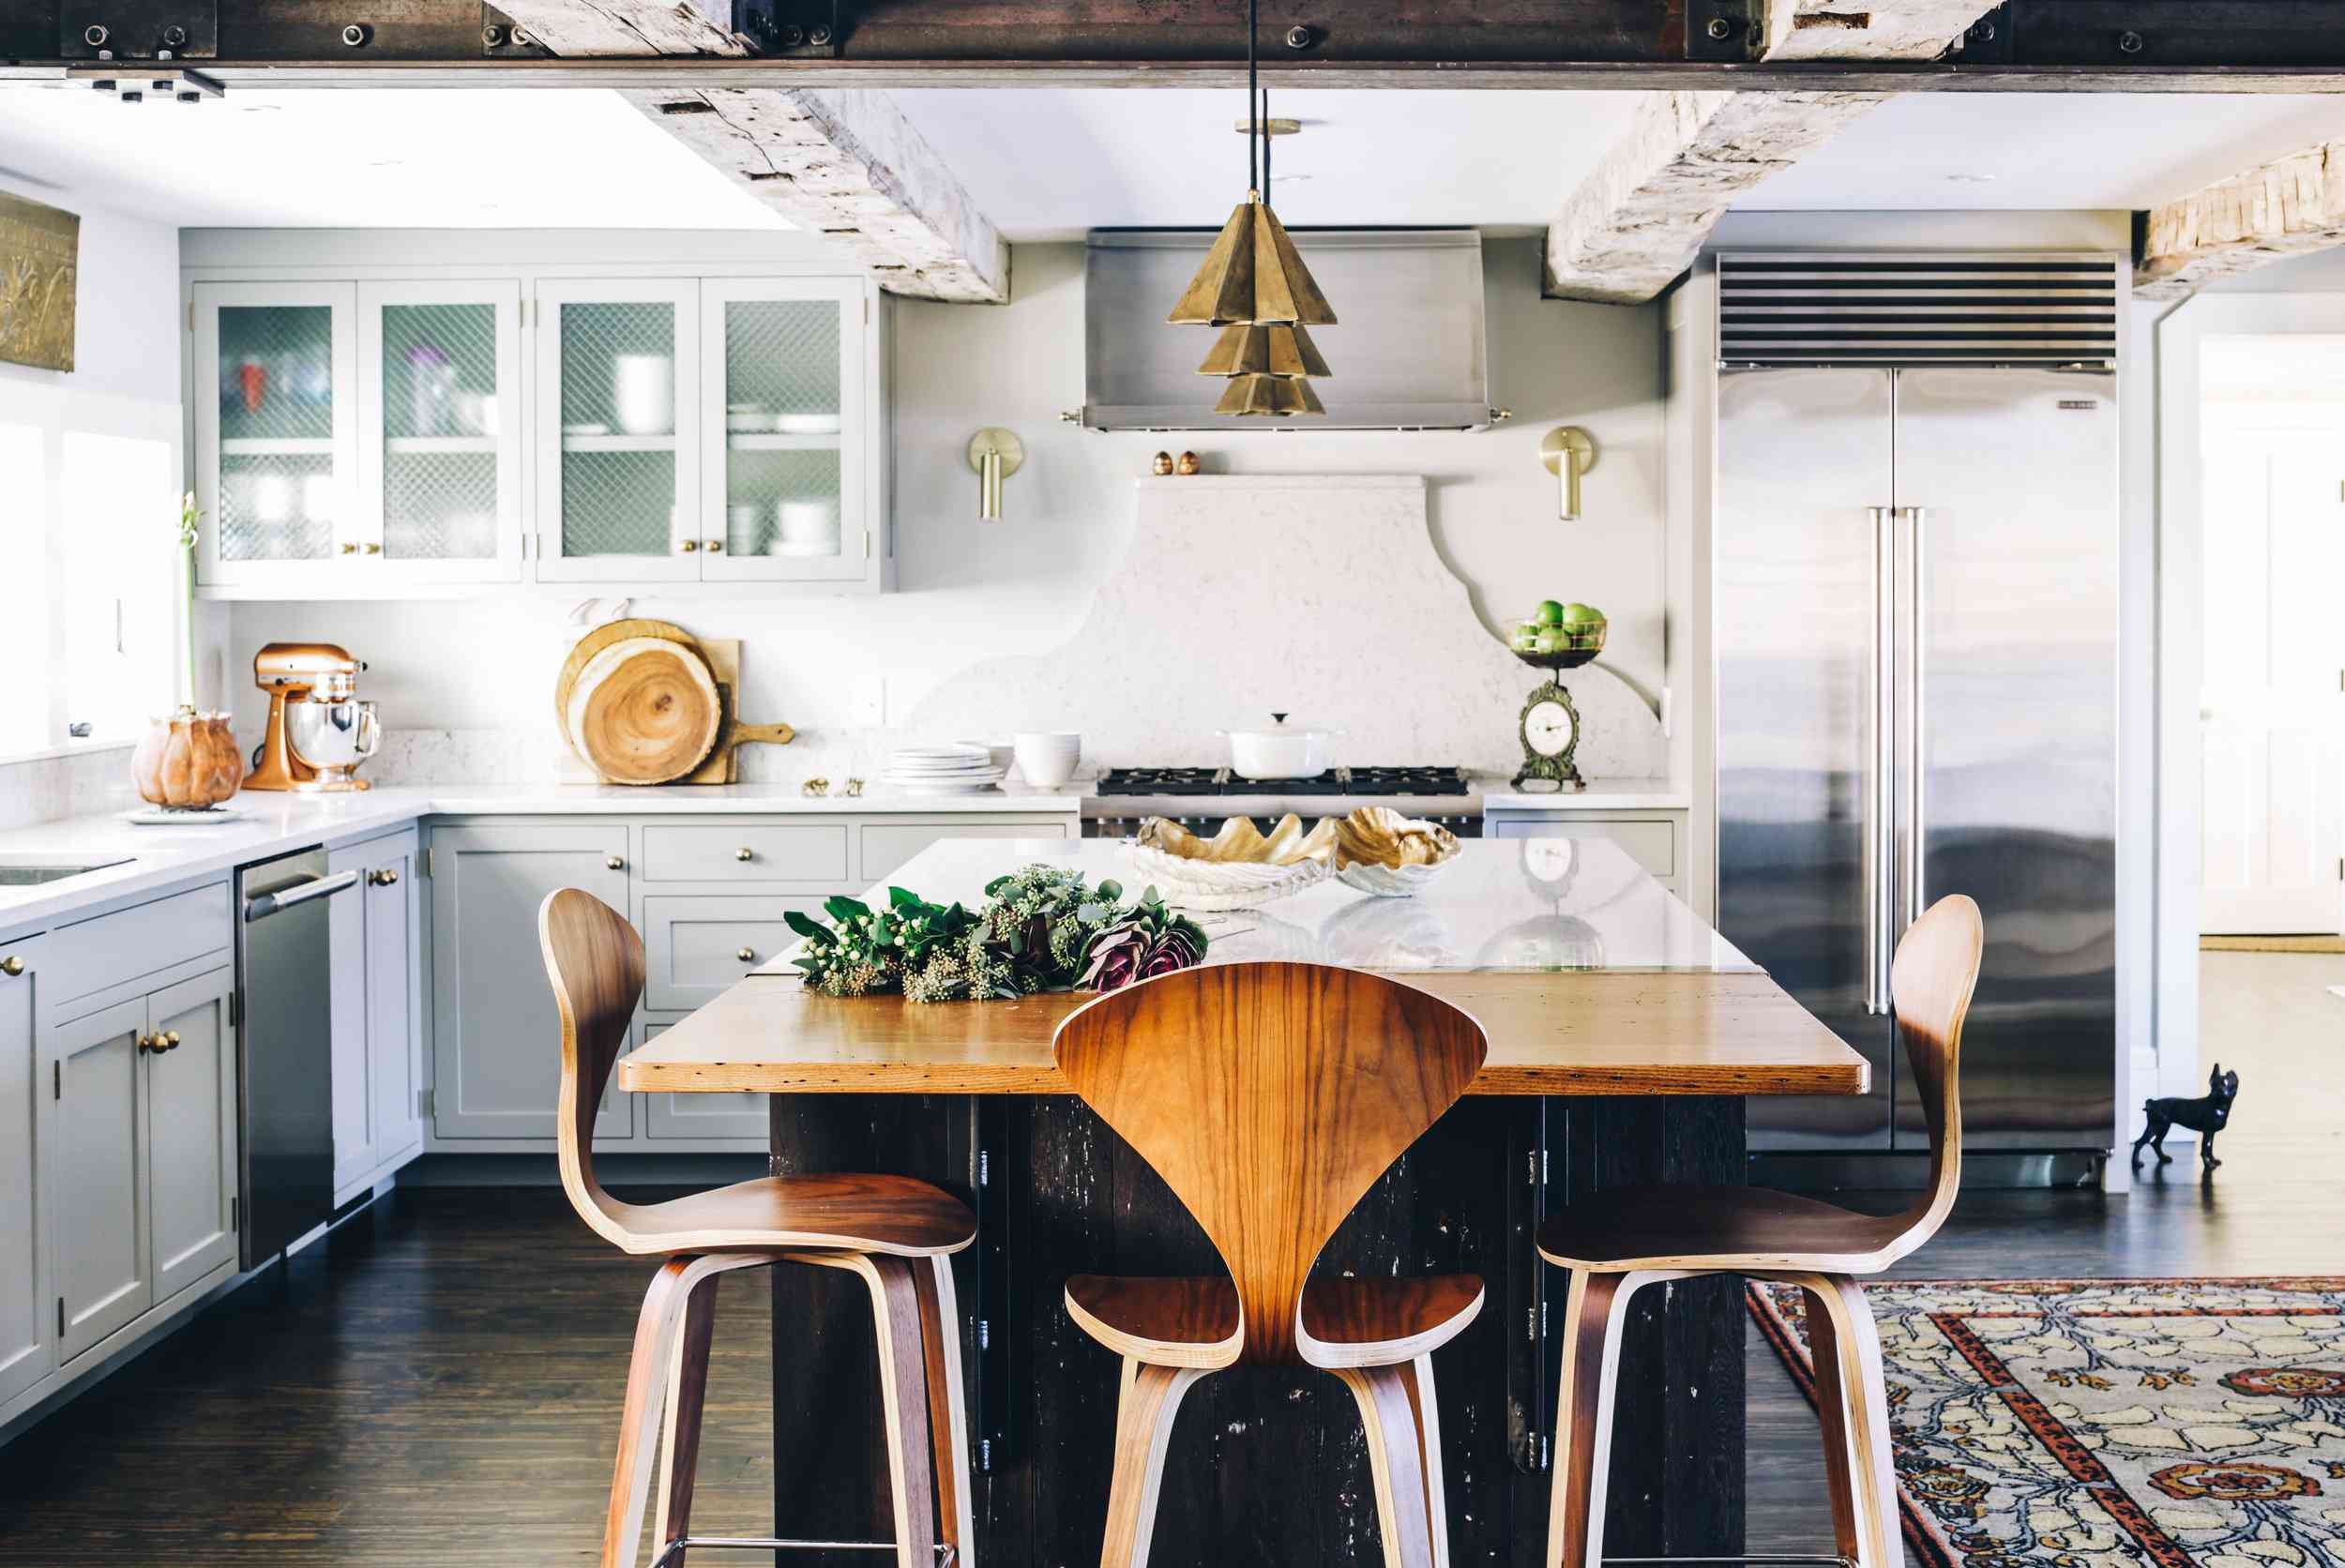 A kitchen with a bar lined with wooden seats